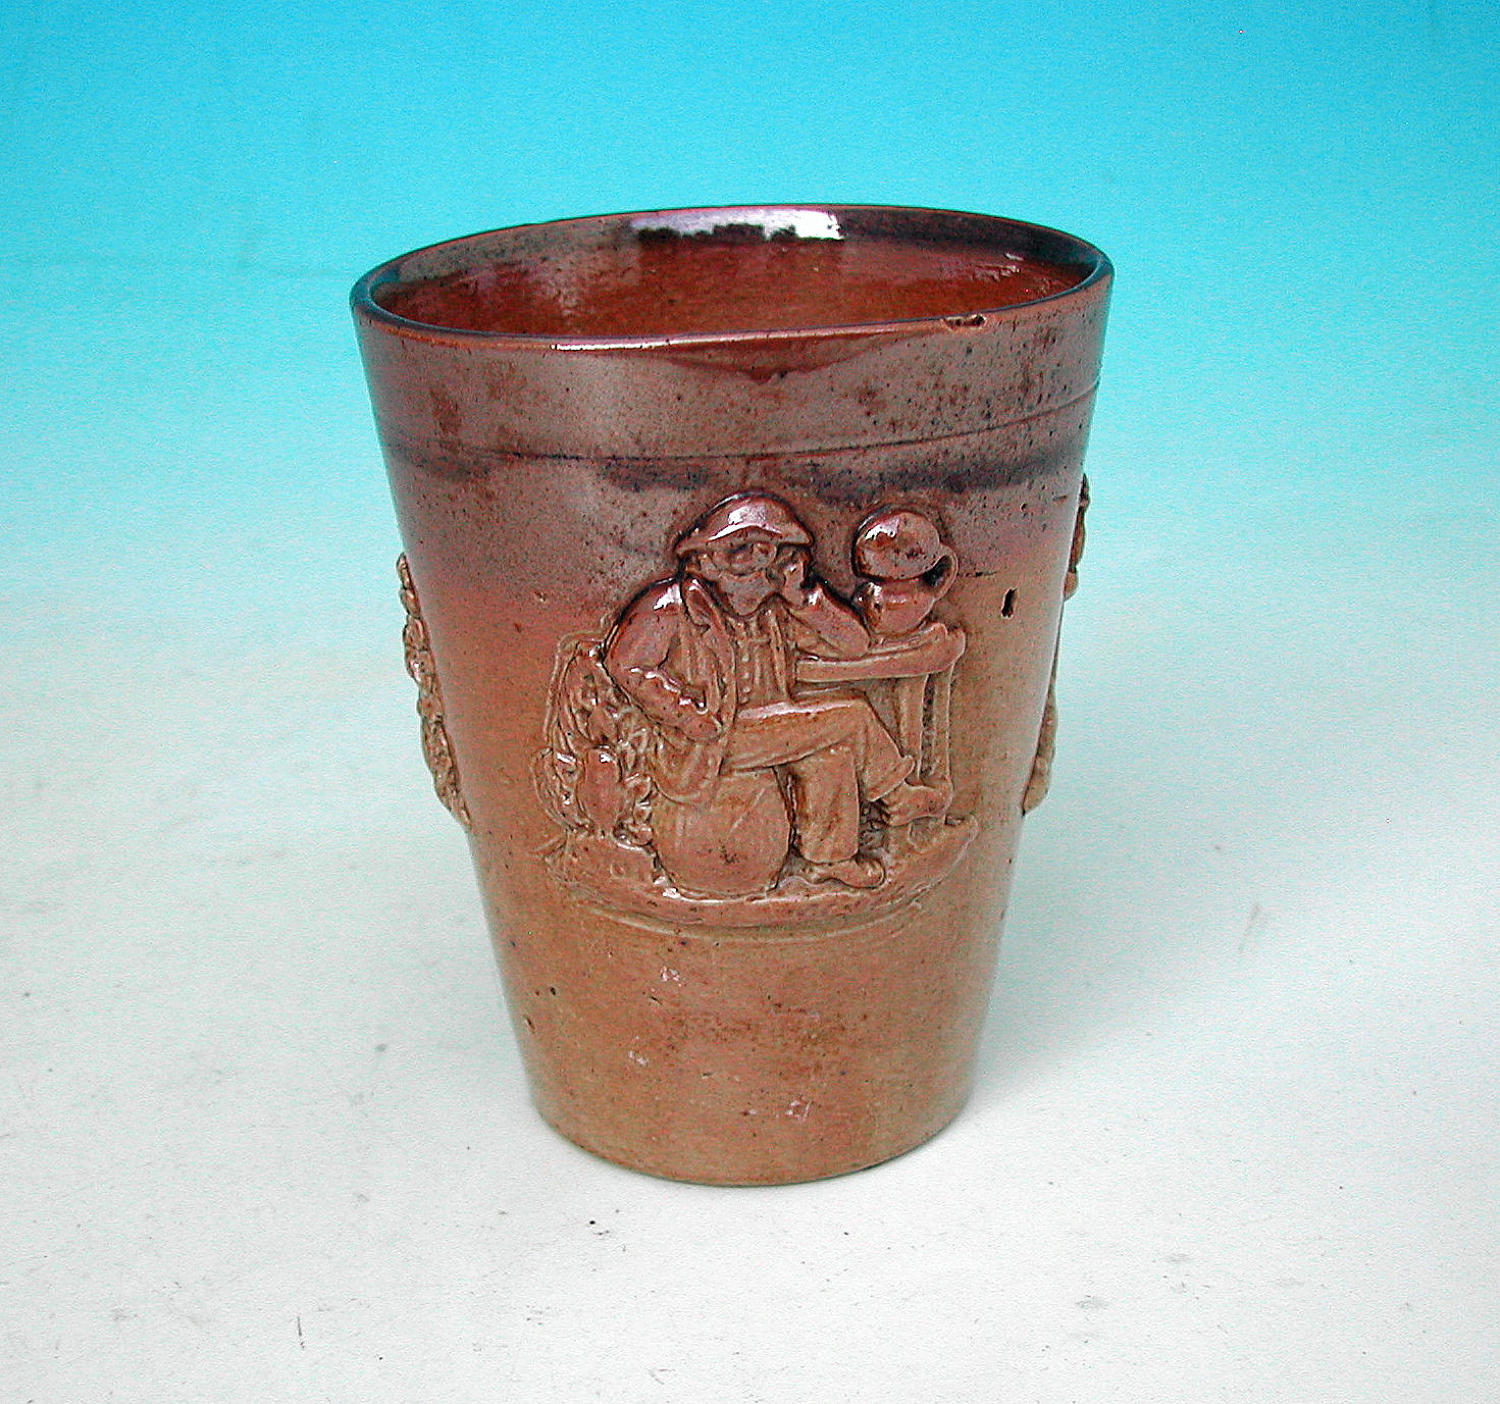 Antique Pottery 19thc Salt Glazed Lambeth Beaker. English. C1840-60